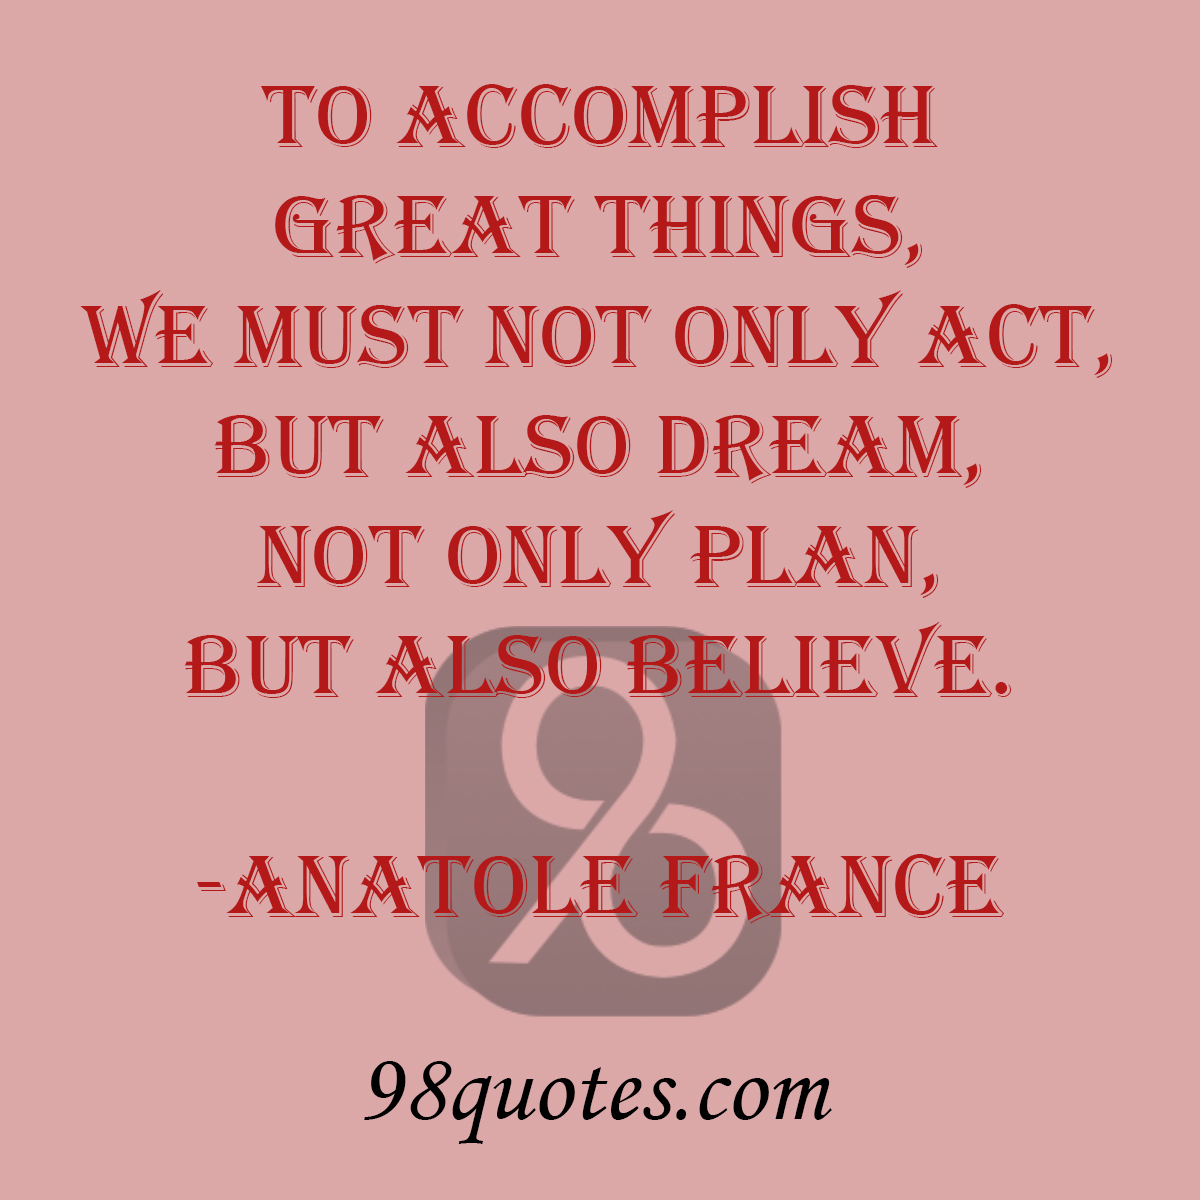 Quotes about accomplish great things 81 quotes for Planning your dreams org